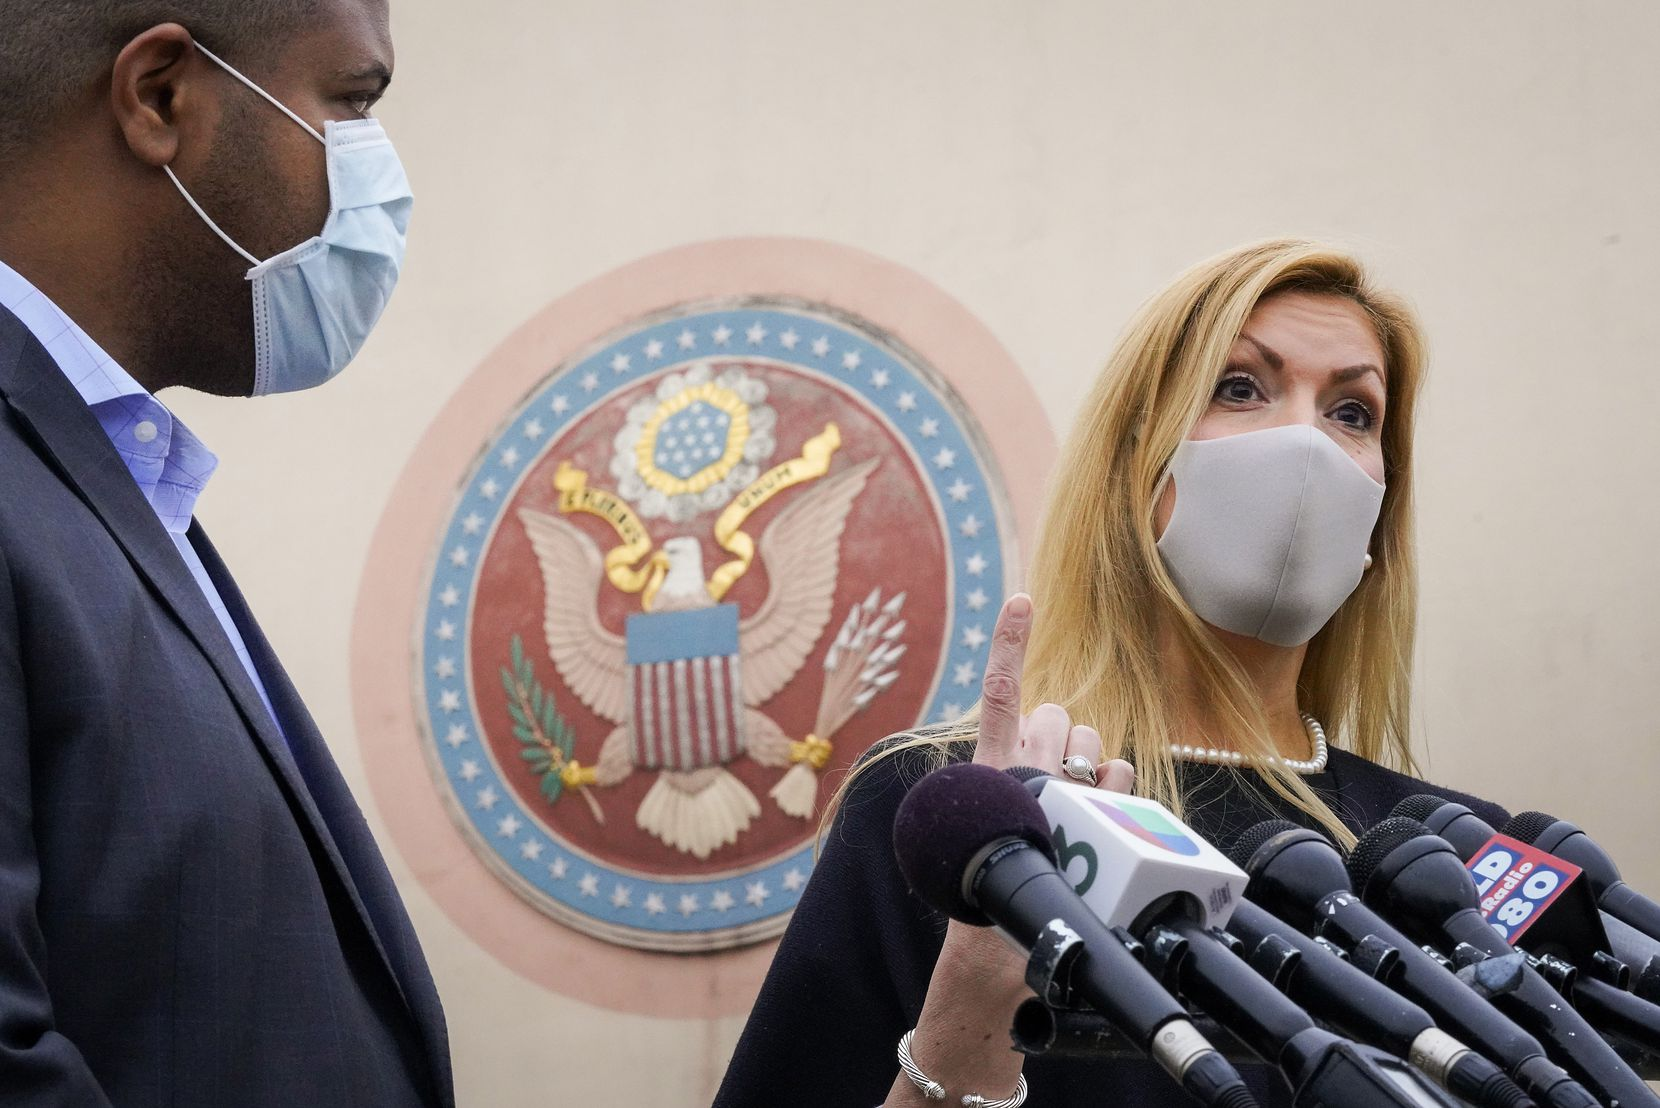 U.S. Rep. Beth Van Duyne and Dallas Mayor Eric Johnson address reporters outside the Tower Building after a tour of the Dallas County COVID-19 mega-vaccination site at Fair Park on Friday, Jan. 22, 2021, in Dallas. (Smiley N. Pool/The Dallas Morning News)